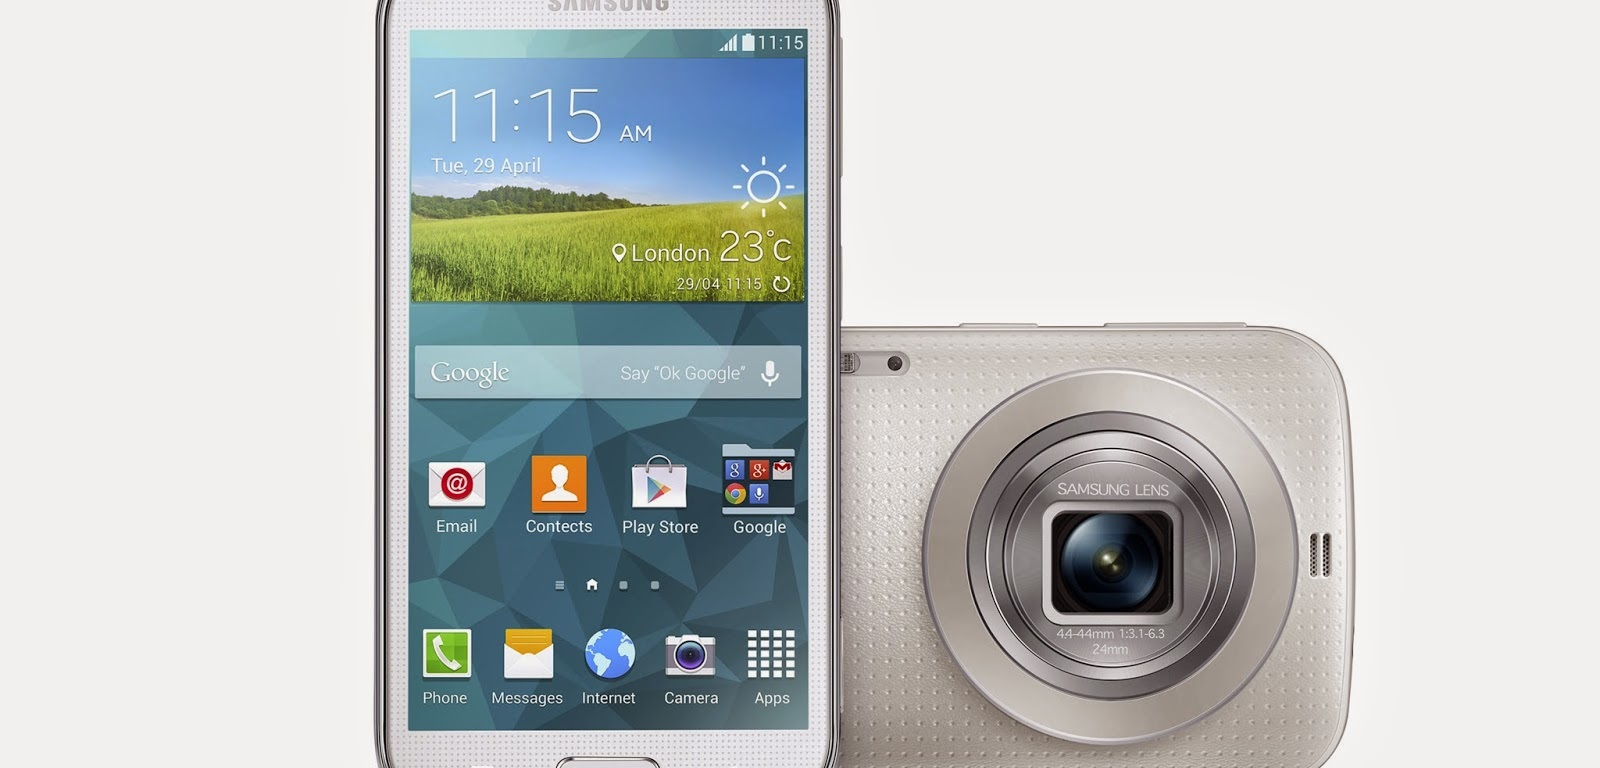 Update Galaxy K Zoom C111 to XXU1ANEC Android 4 4 2 KitKat Official